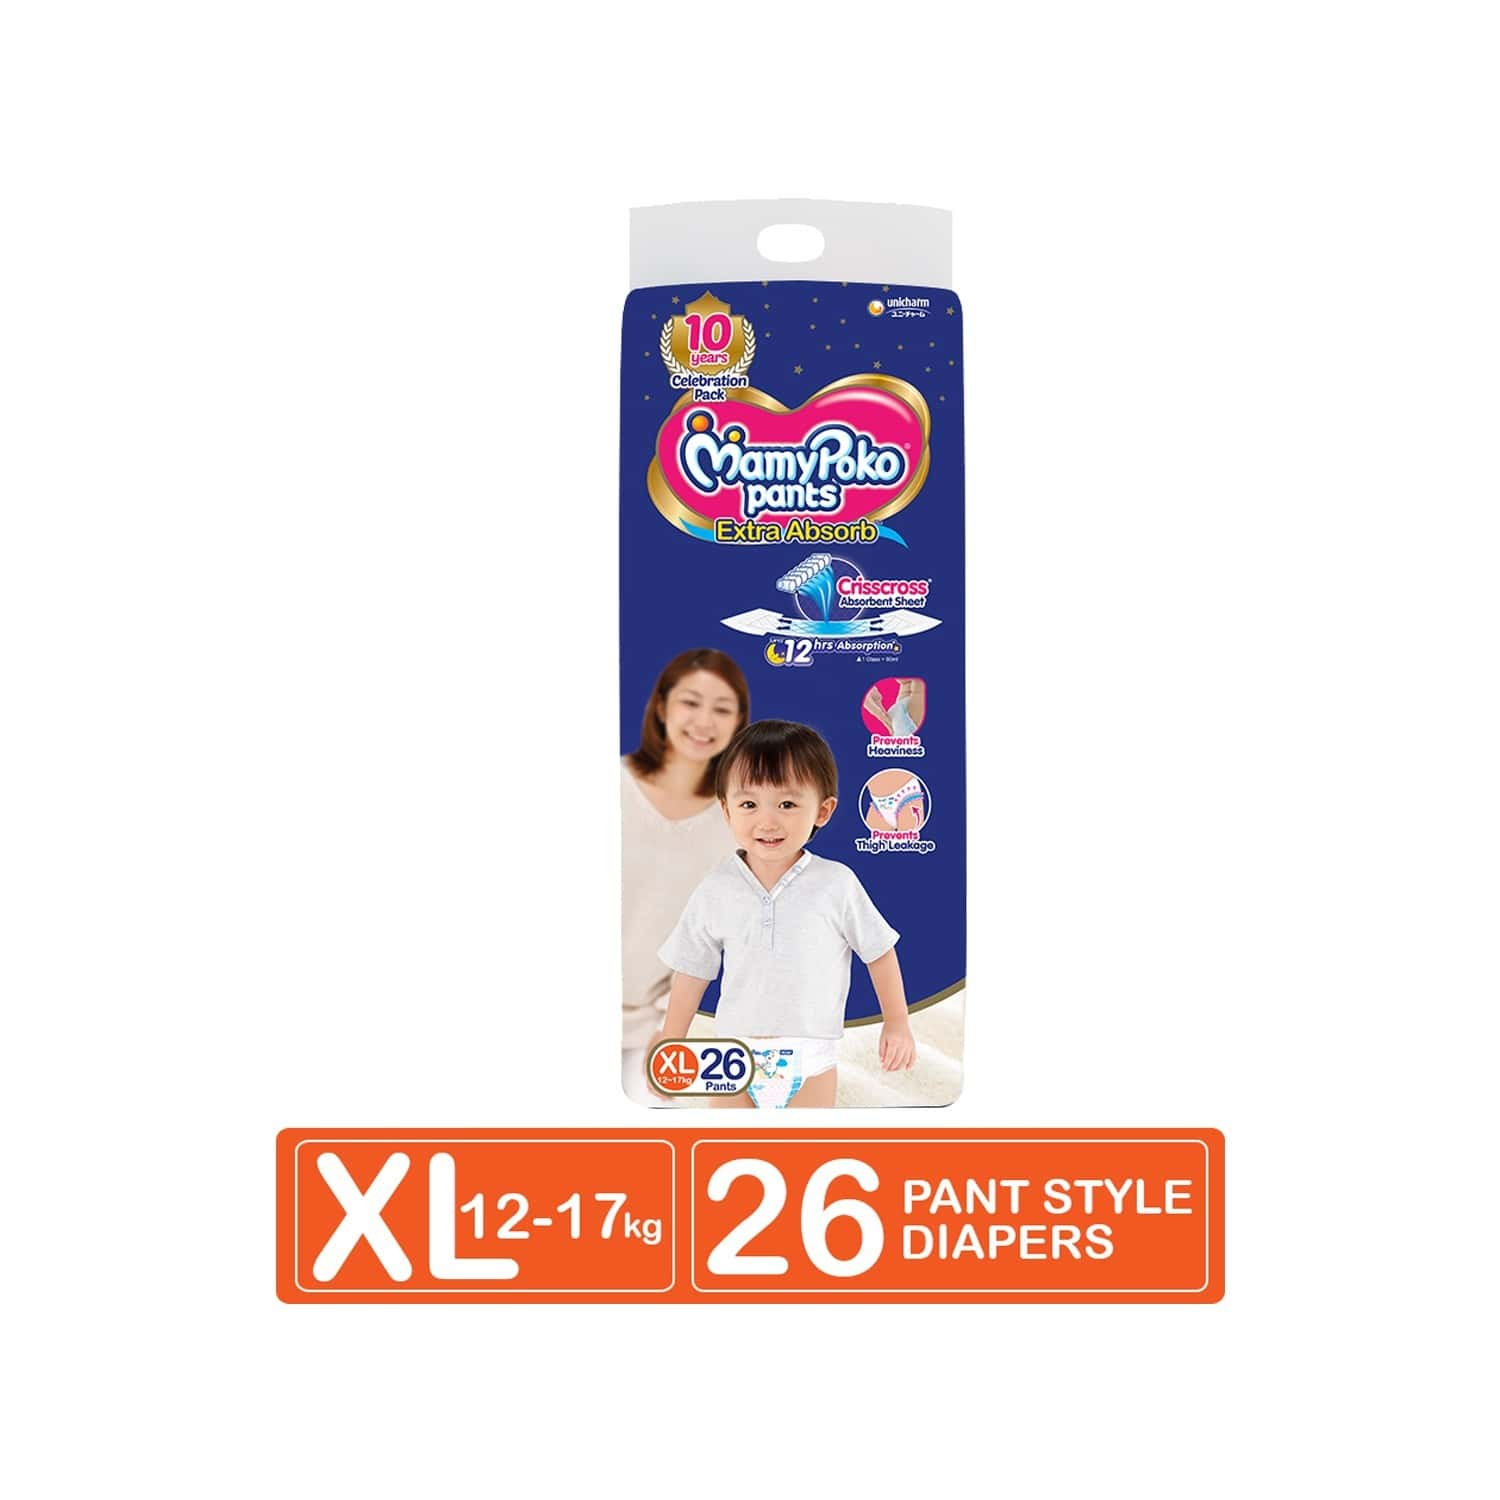 Mamypoko Pants Extra Absorb Diaper - Extra Large Size, Pack Of 26 Diapers